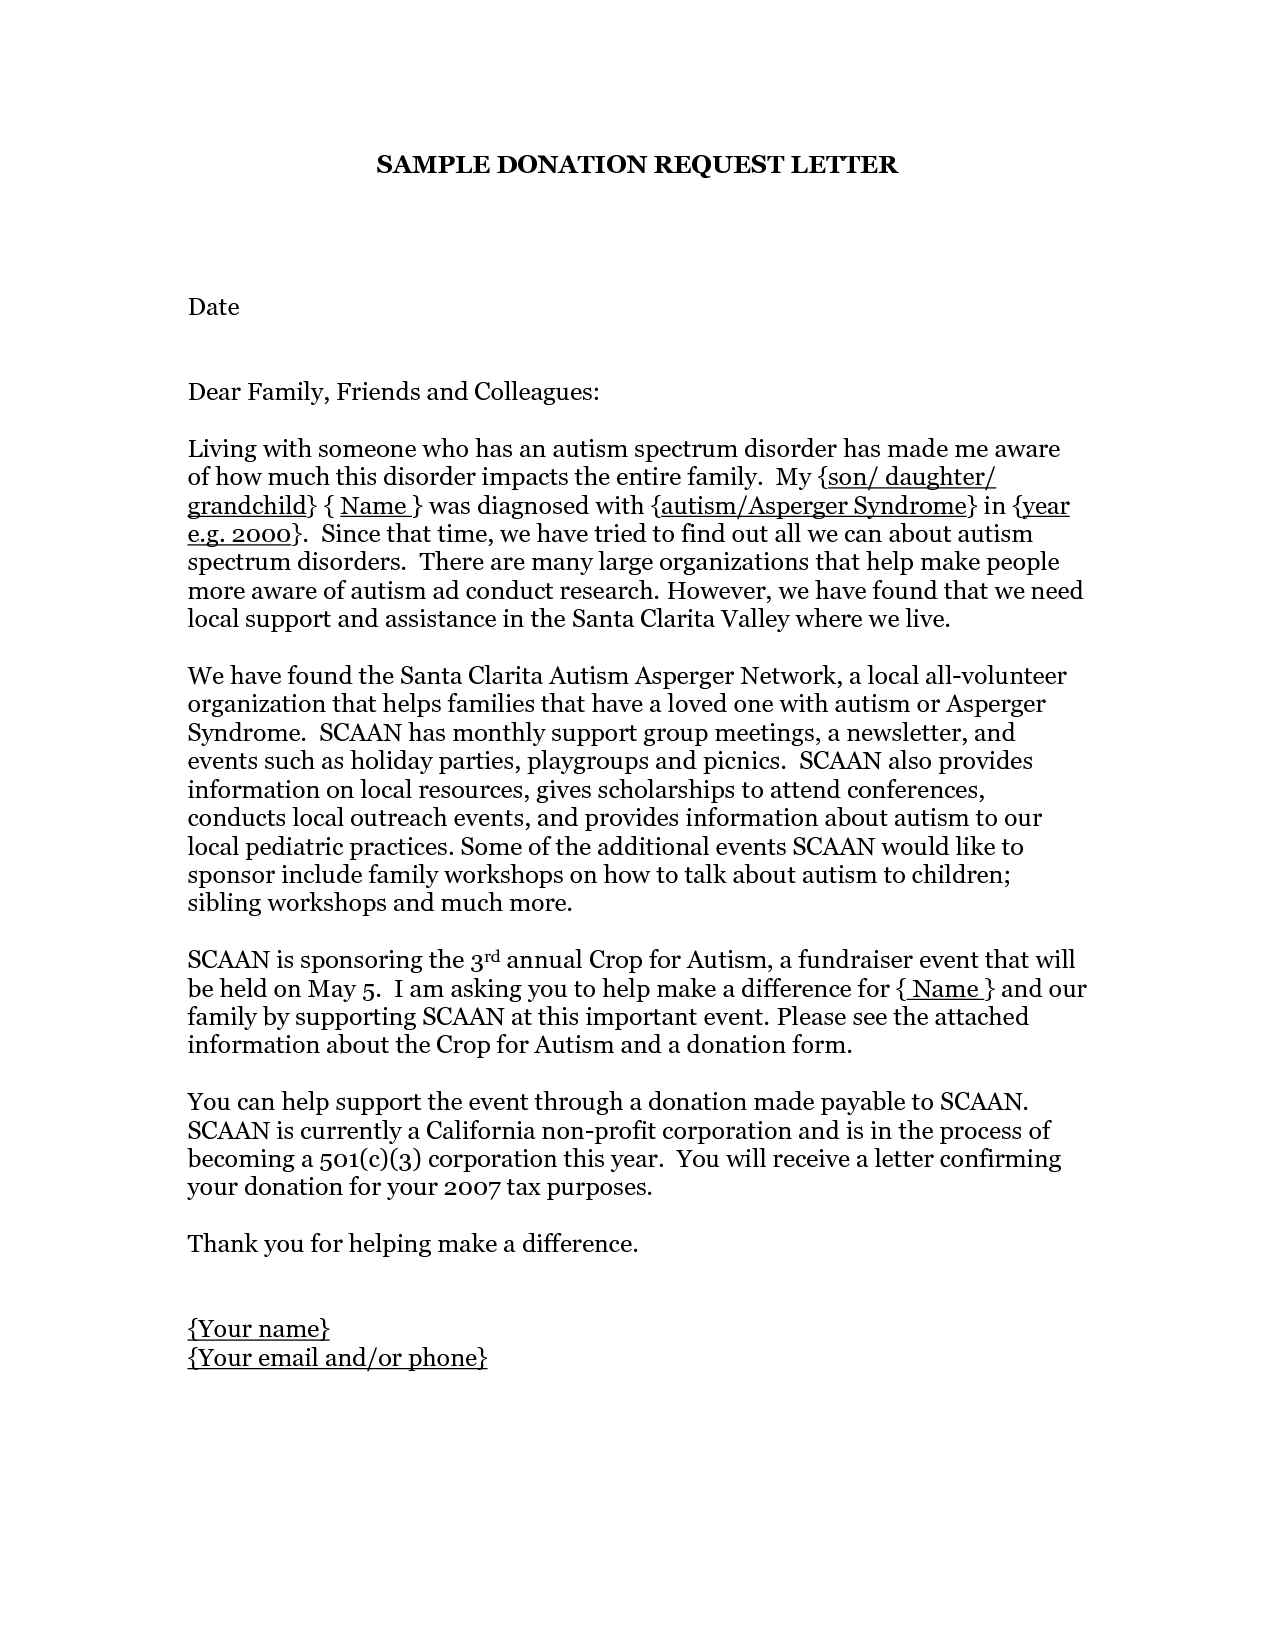 Church donation request letter template cheaphphosting Image collections